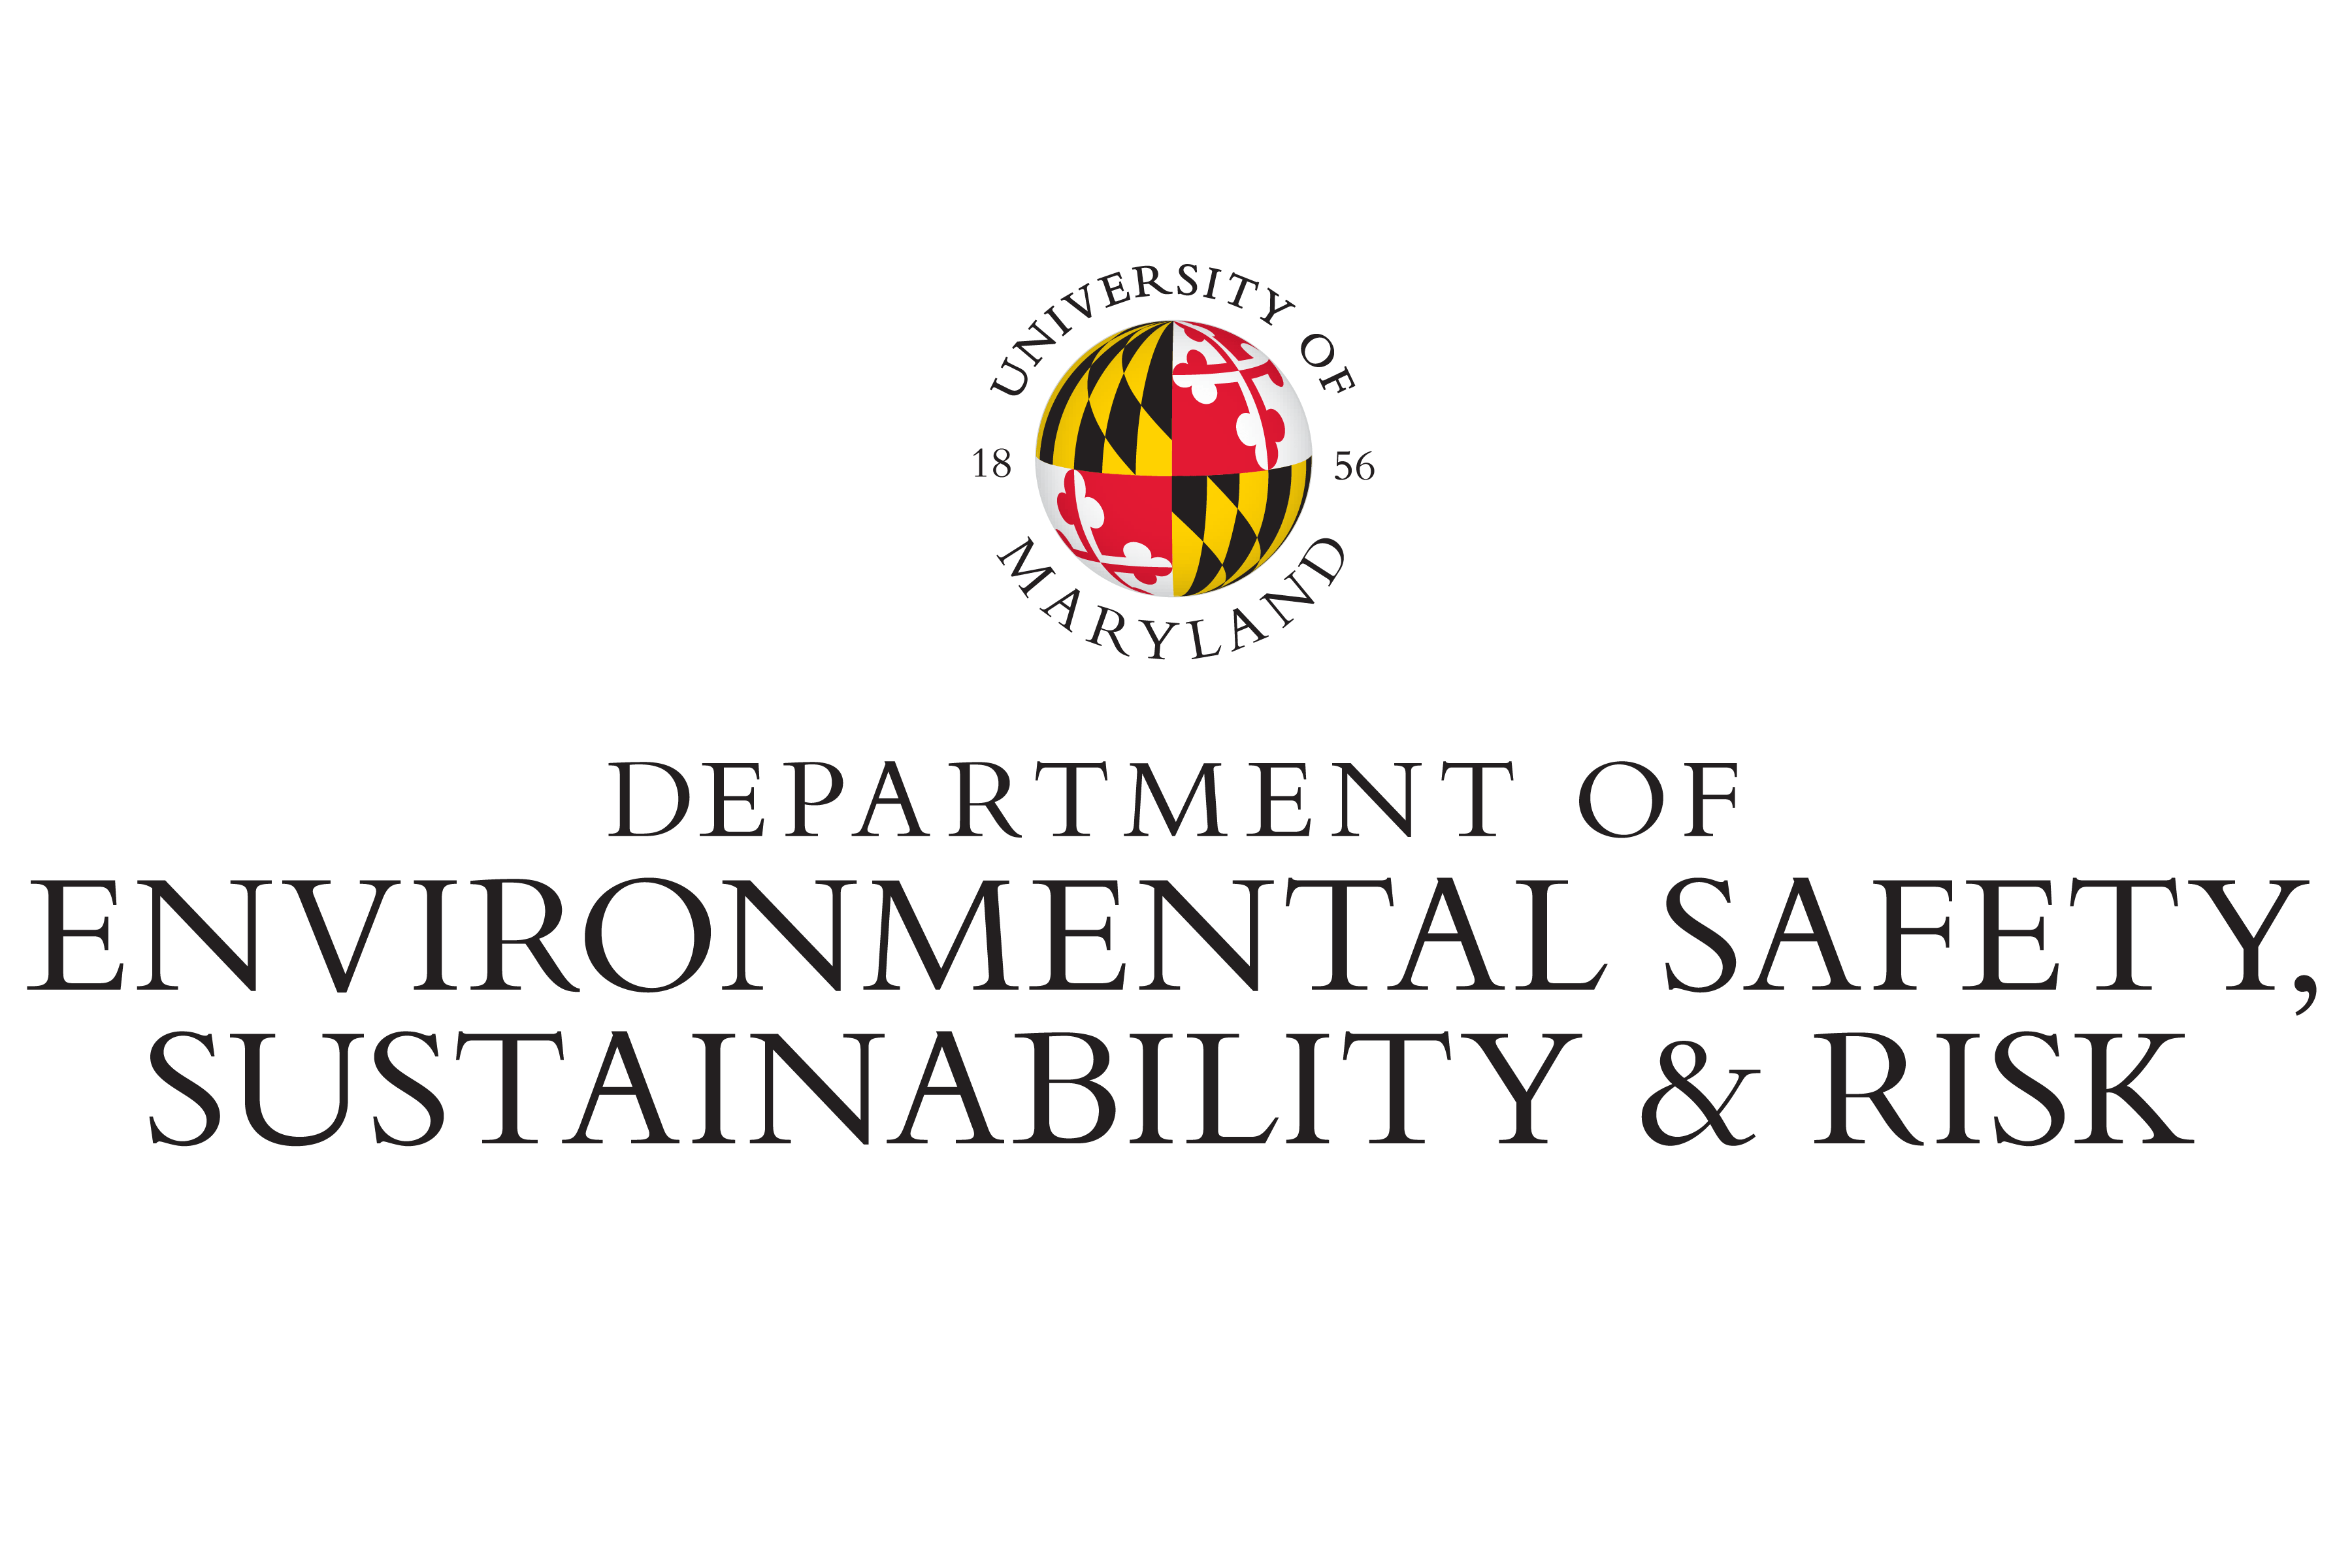 UMD Environmental Safety, Sustainability, and Risk